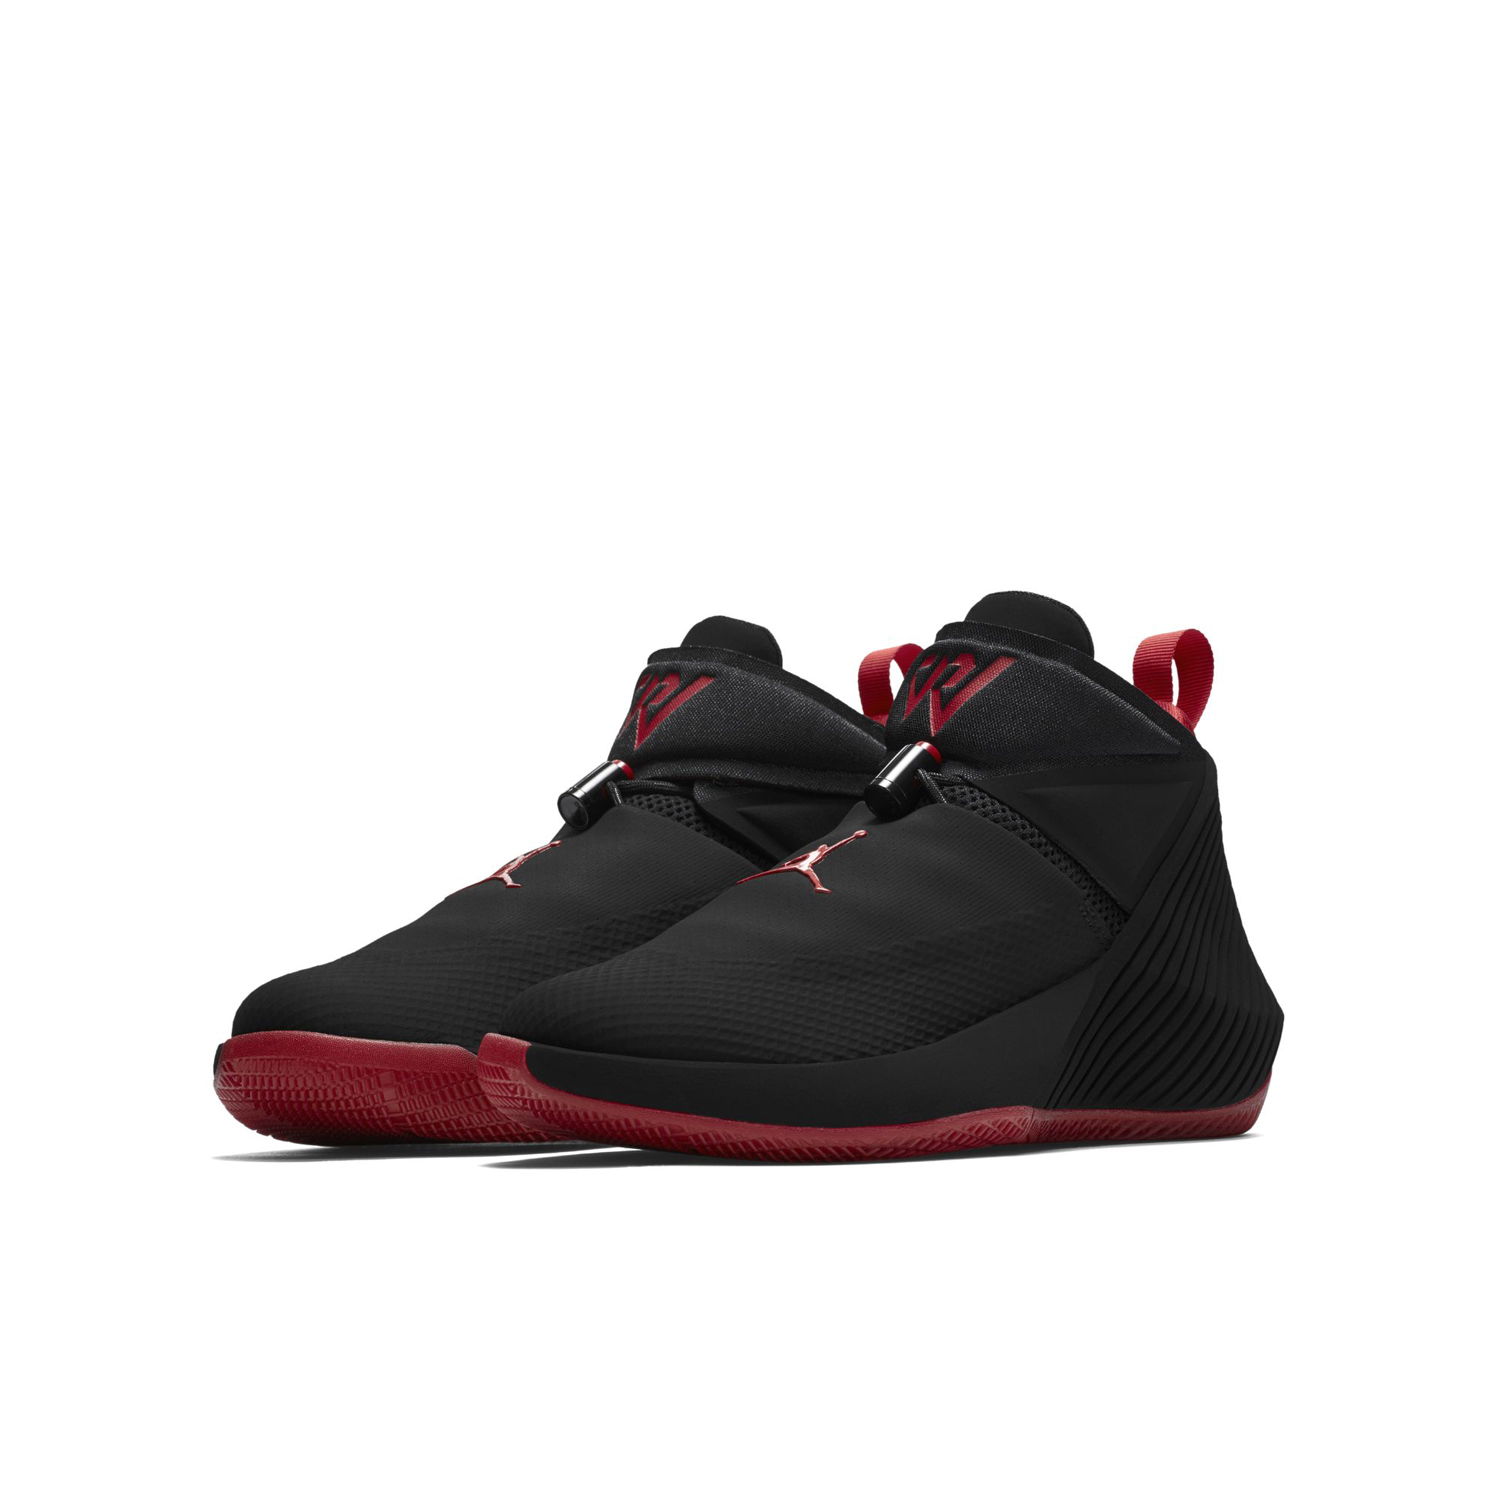 Jordan-Why-Not-Zer0-1-Bred-5